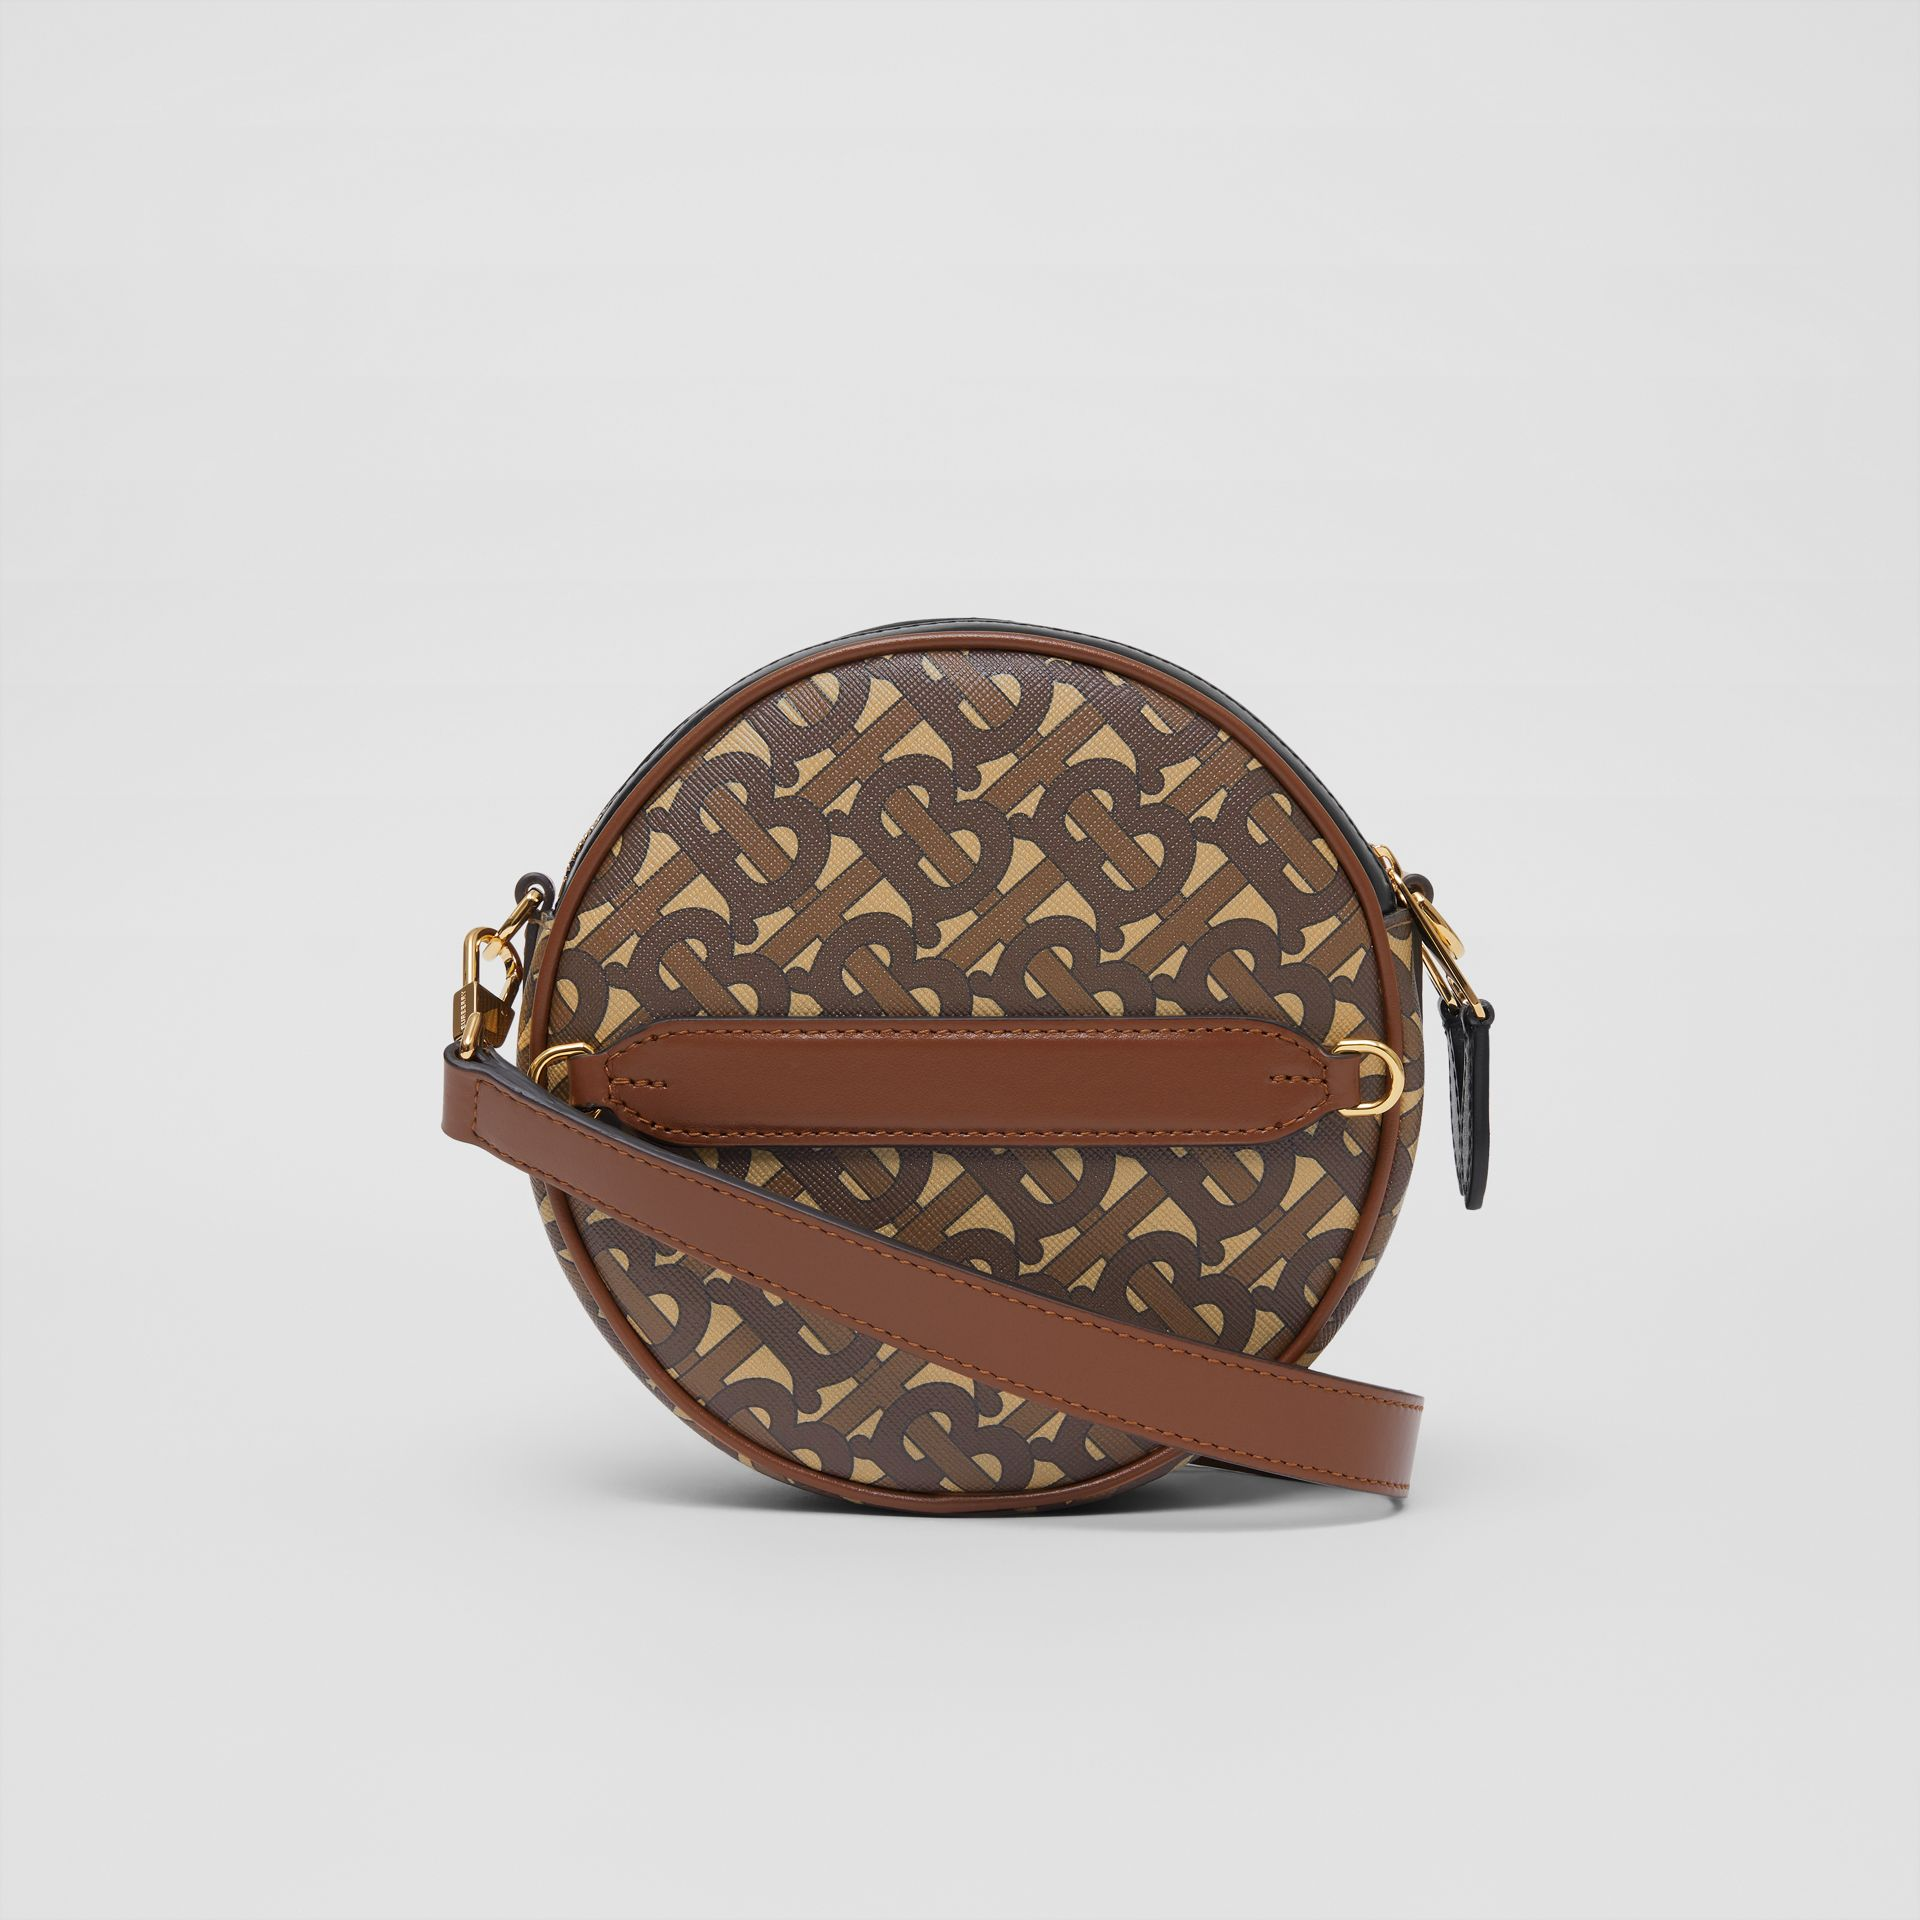 Monogram Print E-canvas Louise Bag in Bridle Brown - Women | Burberry United Kingdom - gallery image 5